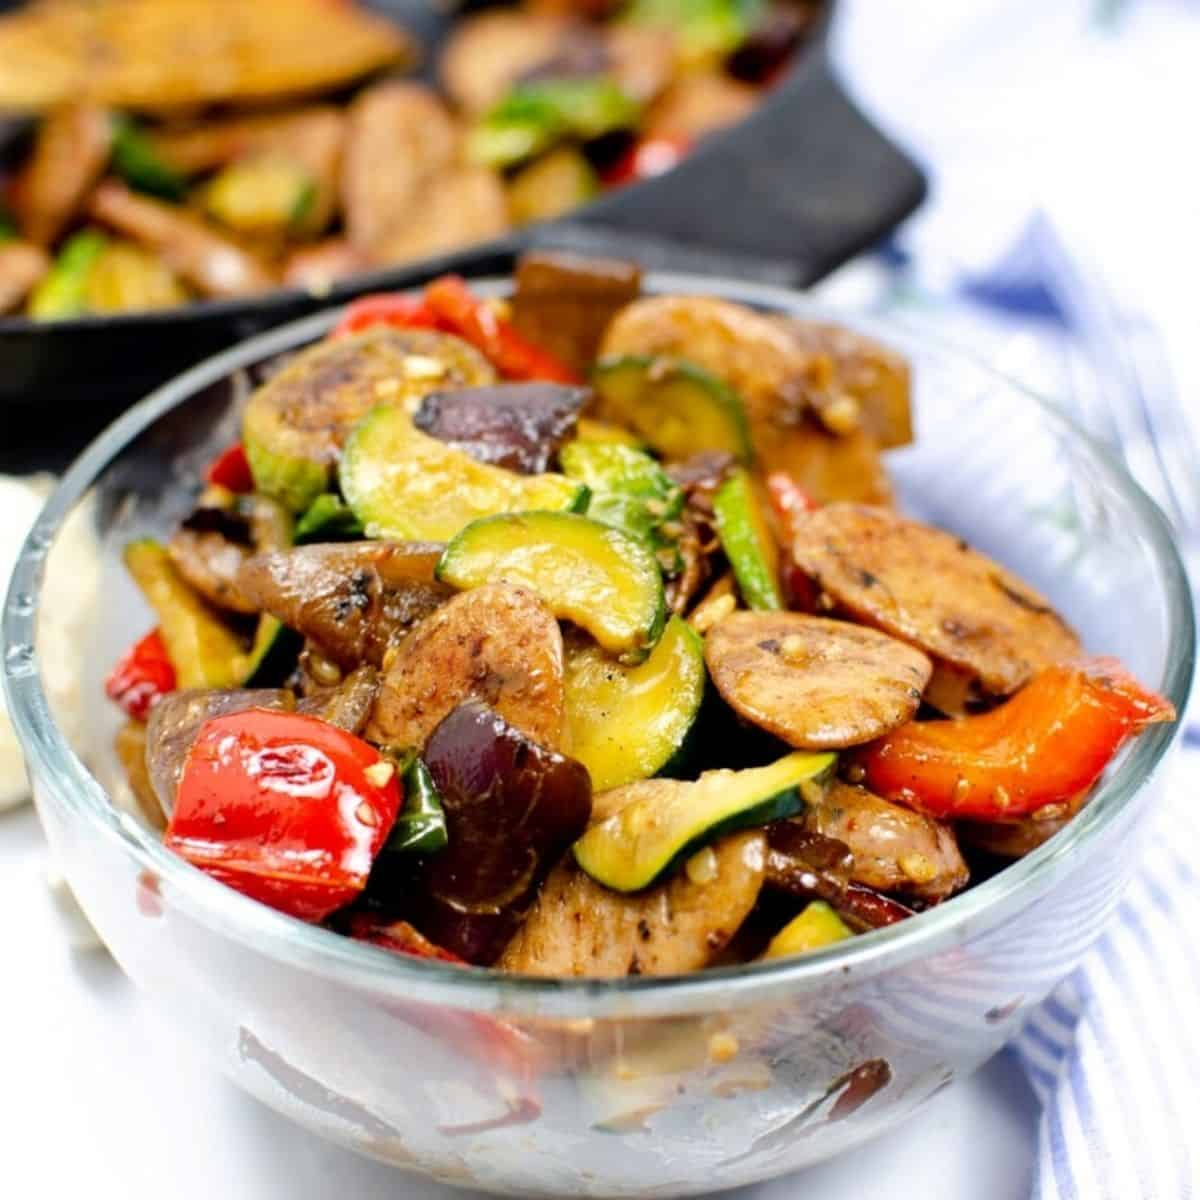 A bowl filled with sautéed vegetables and sliced chicken sausage.